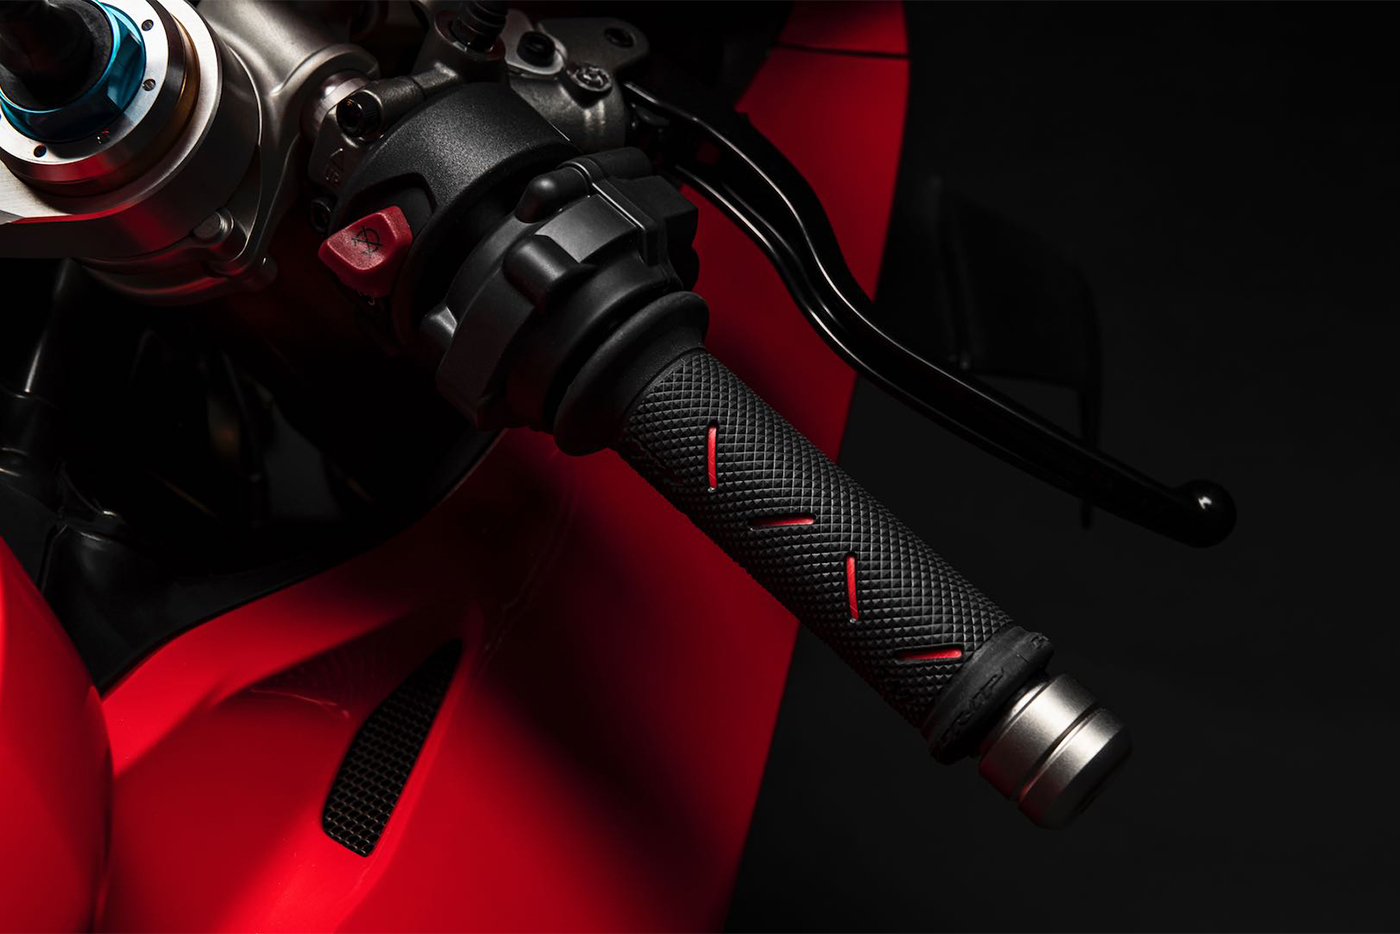 2020-ducati-panigale-v4-first-look-fast-facts-8.jpg